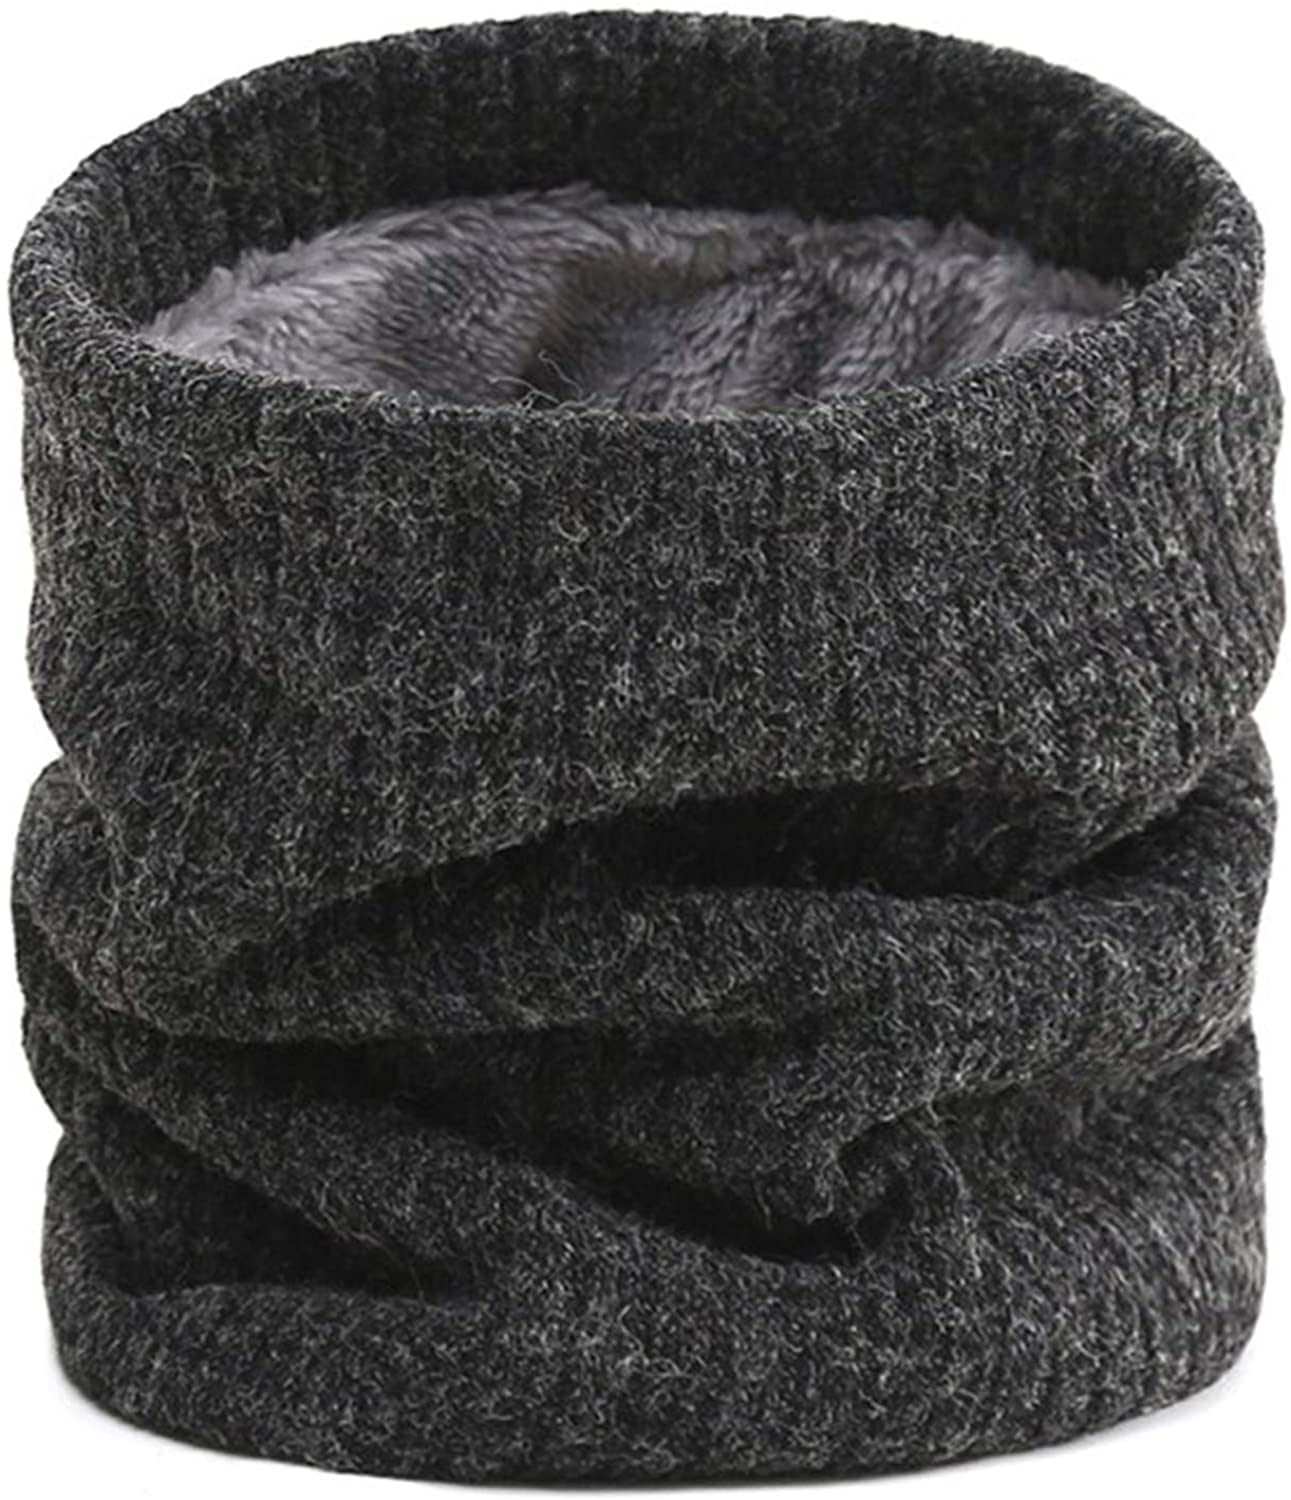 AIFFERA Fleece Winter Neck Warmer Gaiter,Lined Knitted Neck Warmer Scarf for Women Men